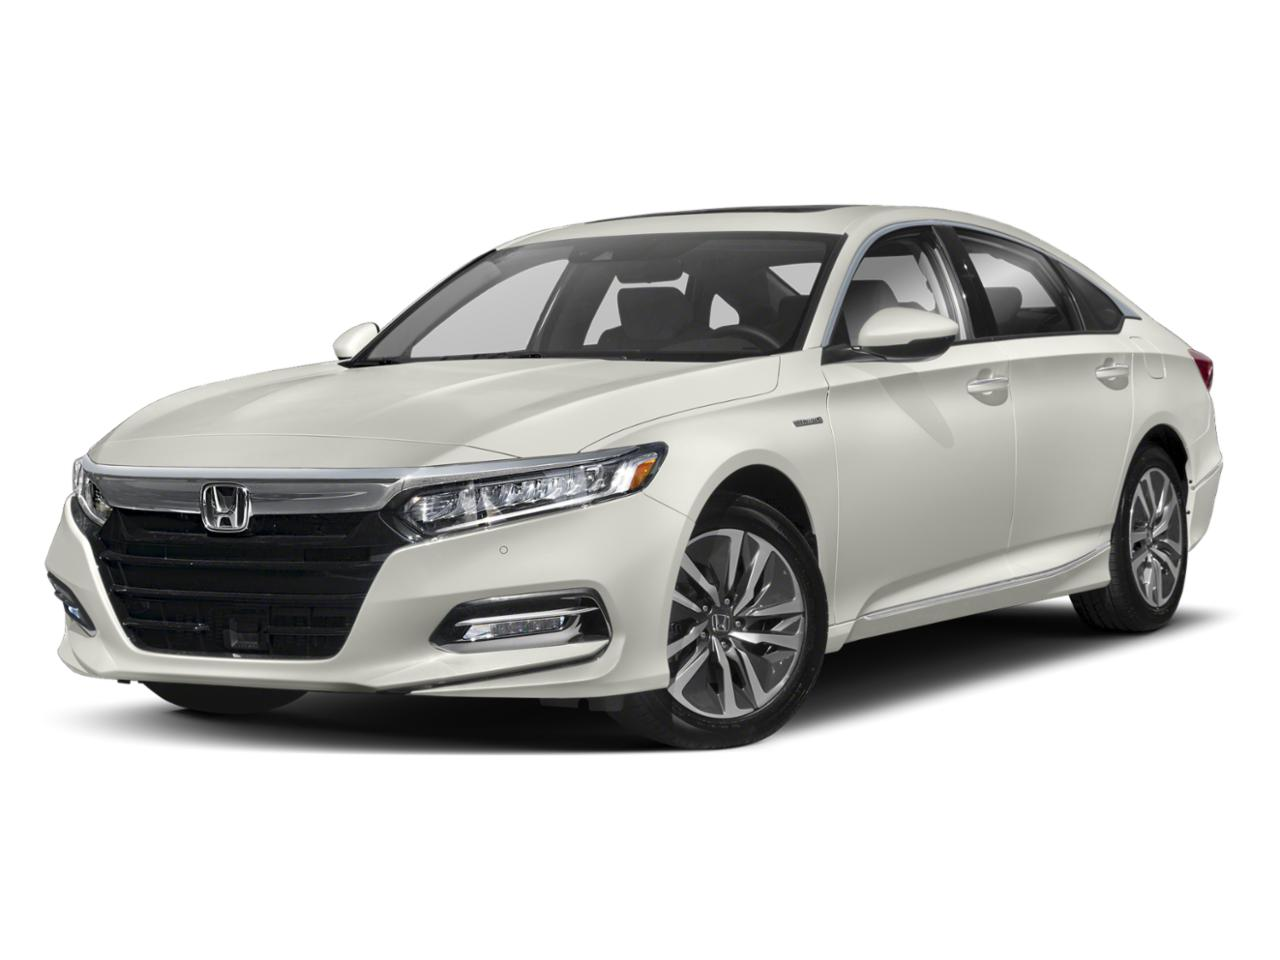 2018 Honda Accord Hybrid Vehicle Photo in Oklahoma City, OK 73131